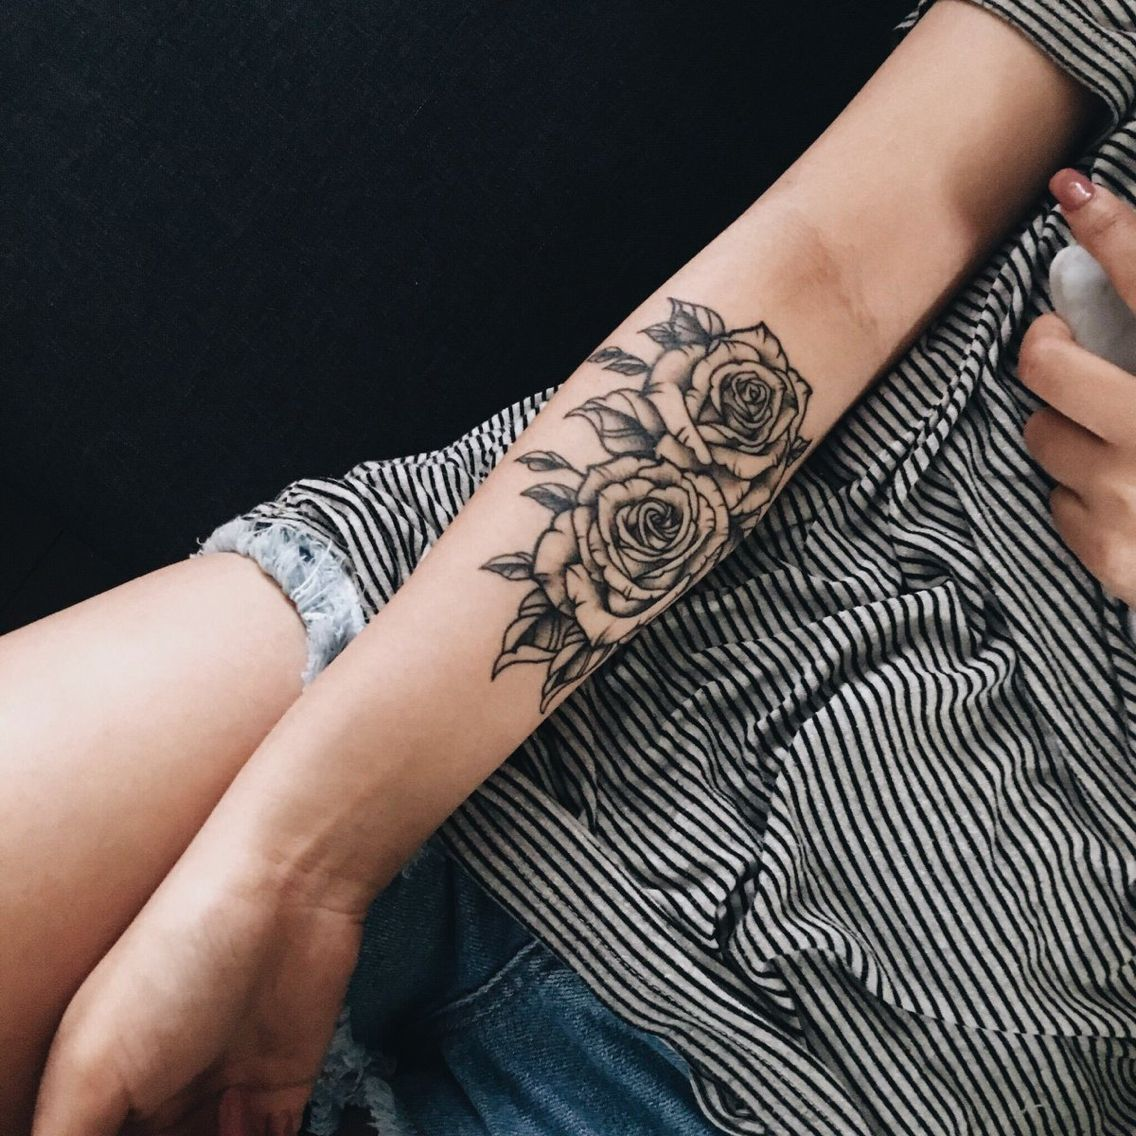 Black And White Floral Tattoo Design Ideas Inspiration Tattoo